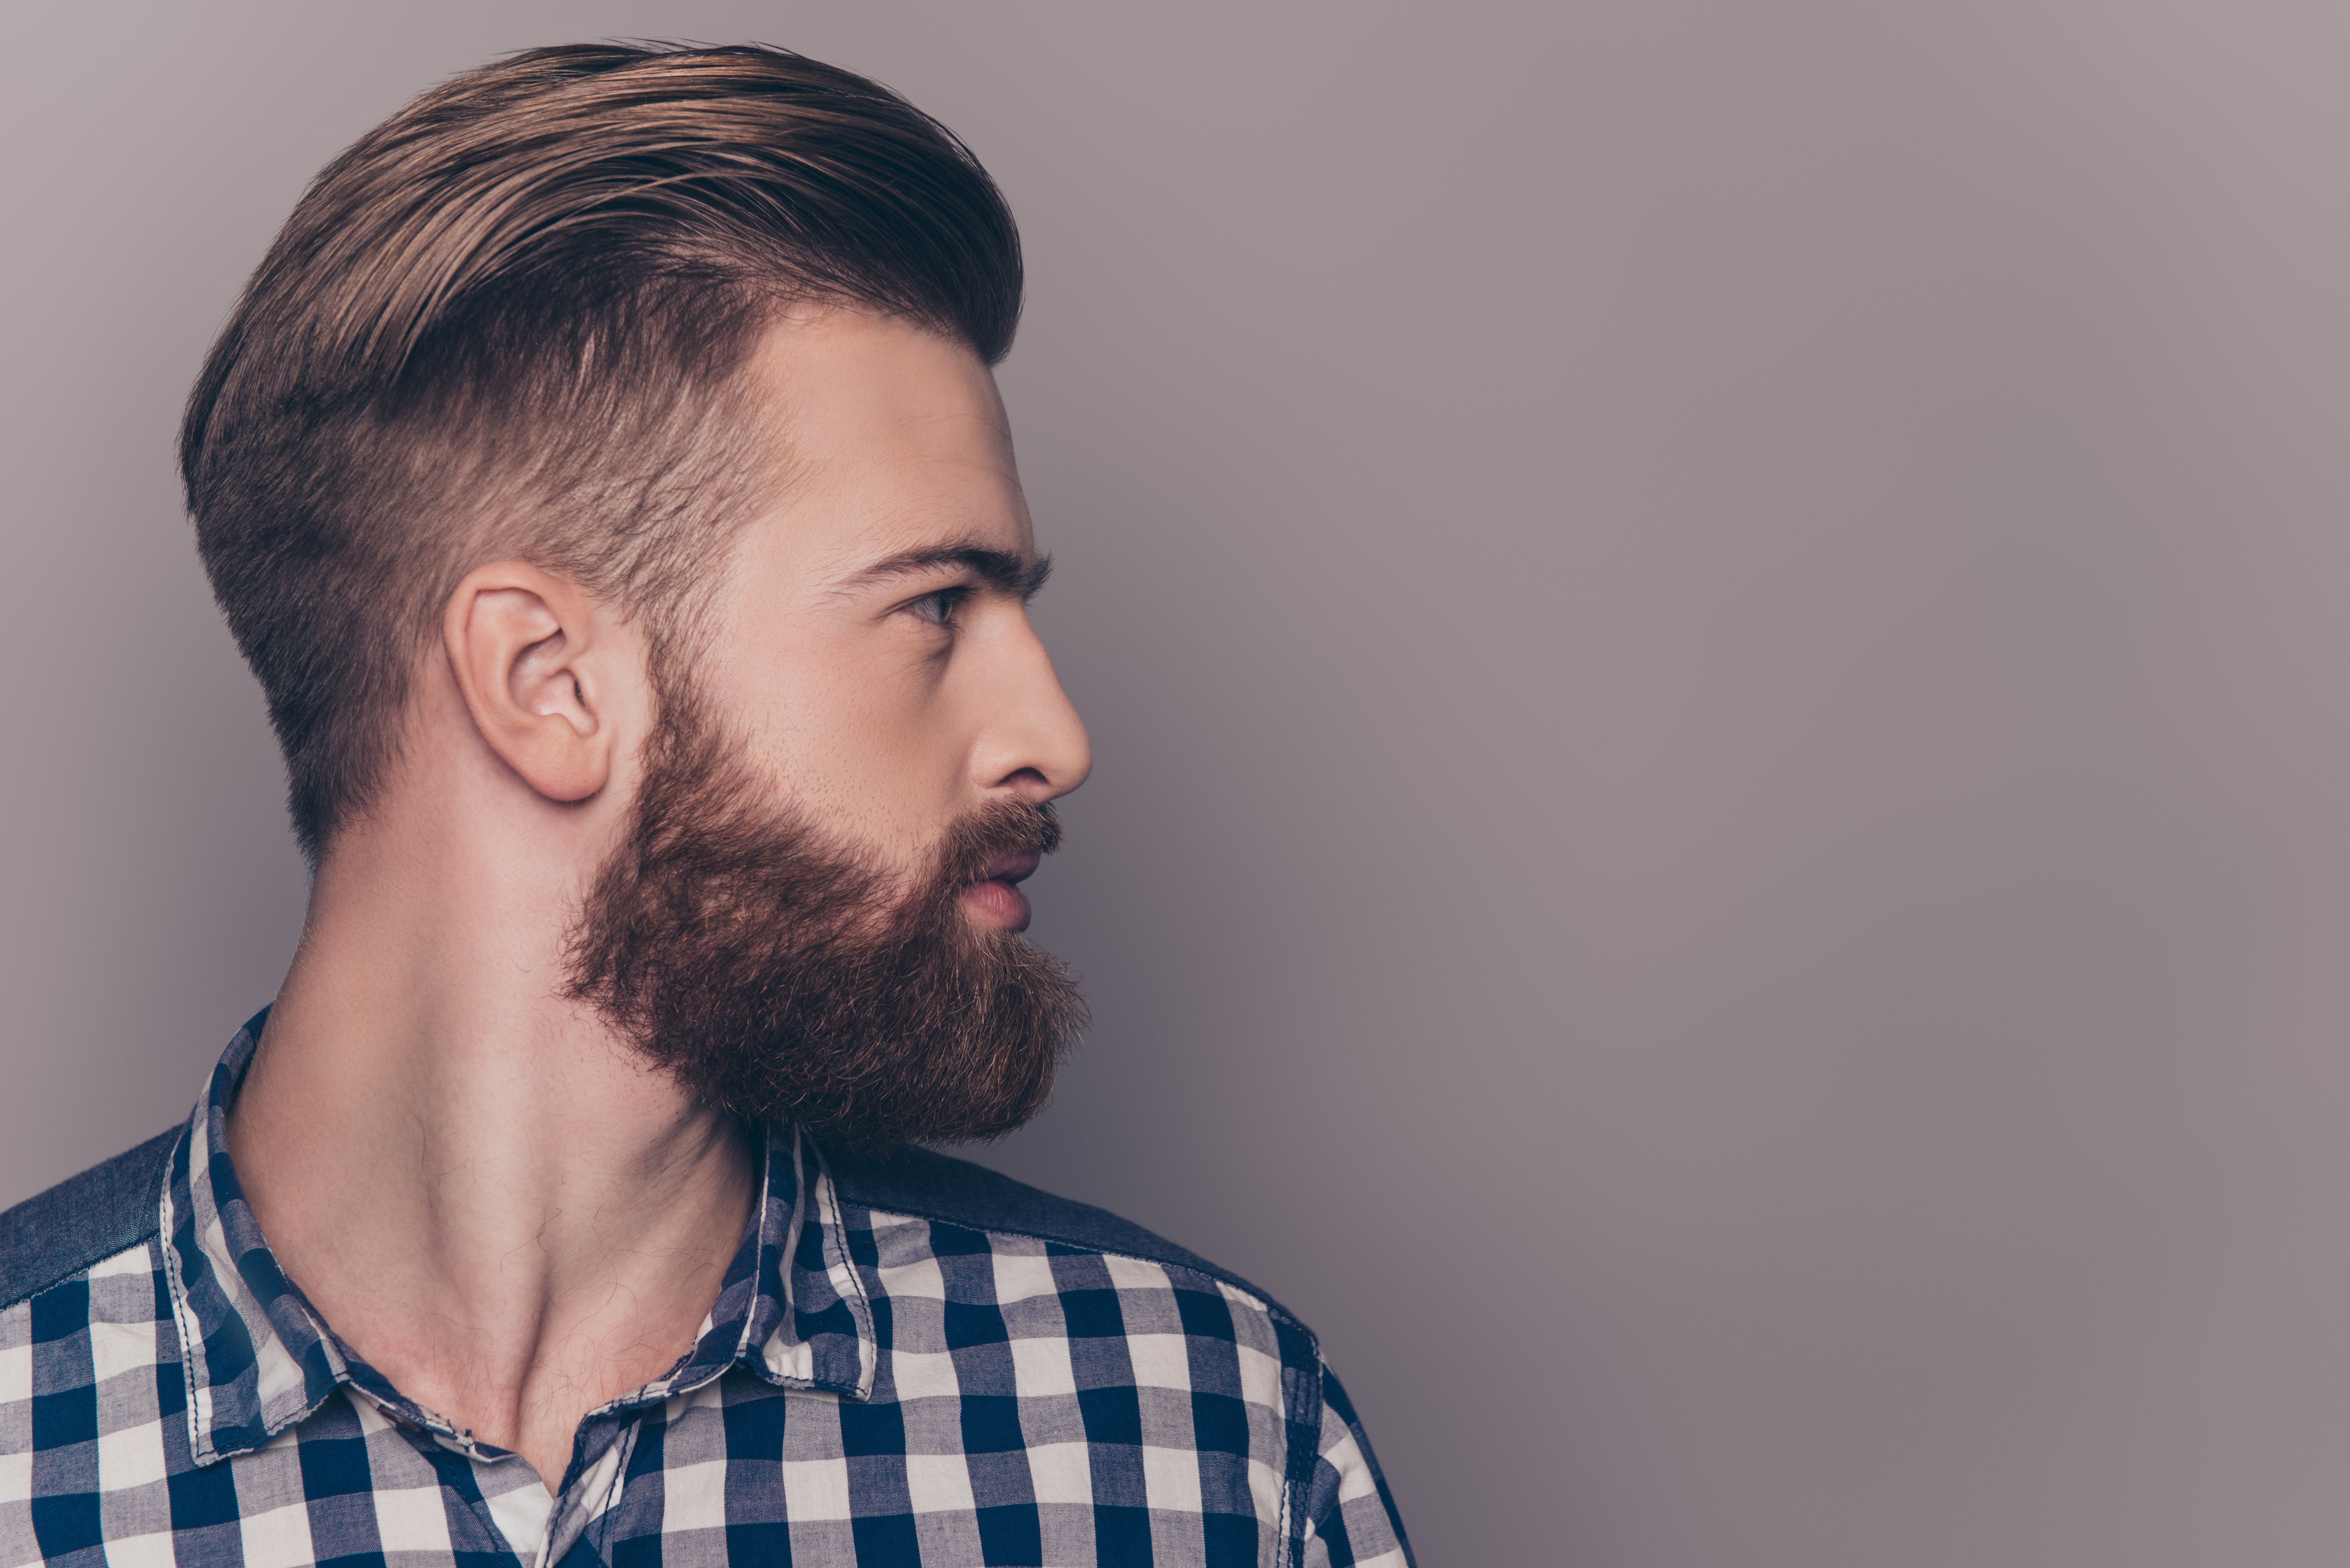 The profile of a man with a beard, wearing a blue plaid t-shirt. | Photo: Shutterstock